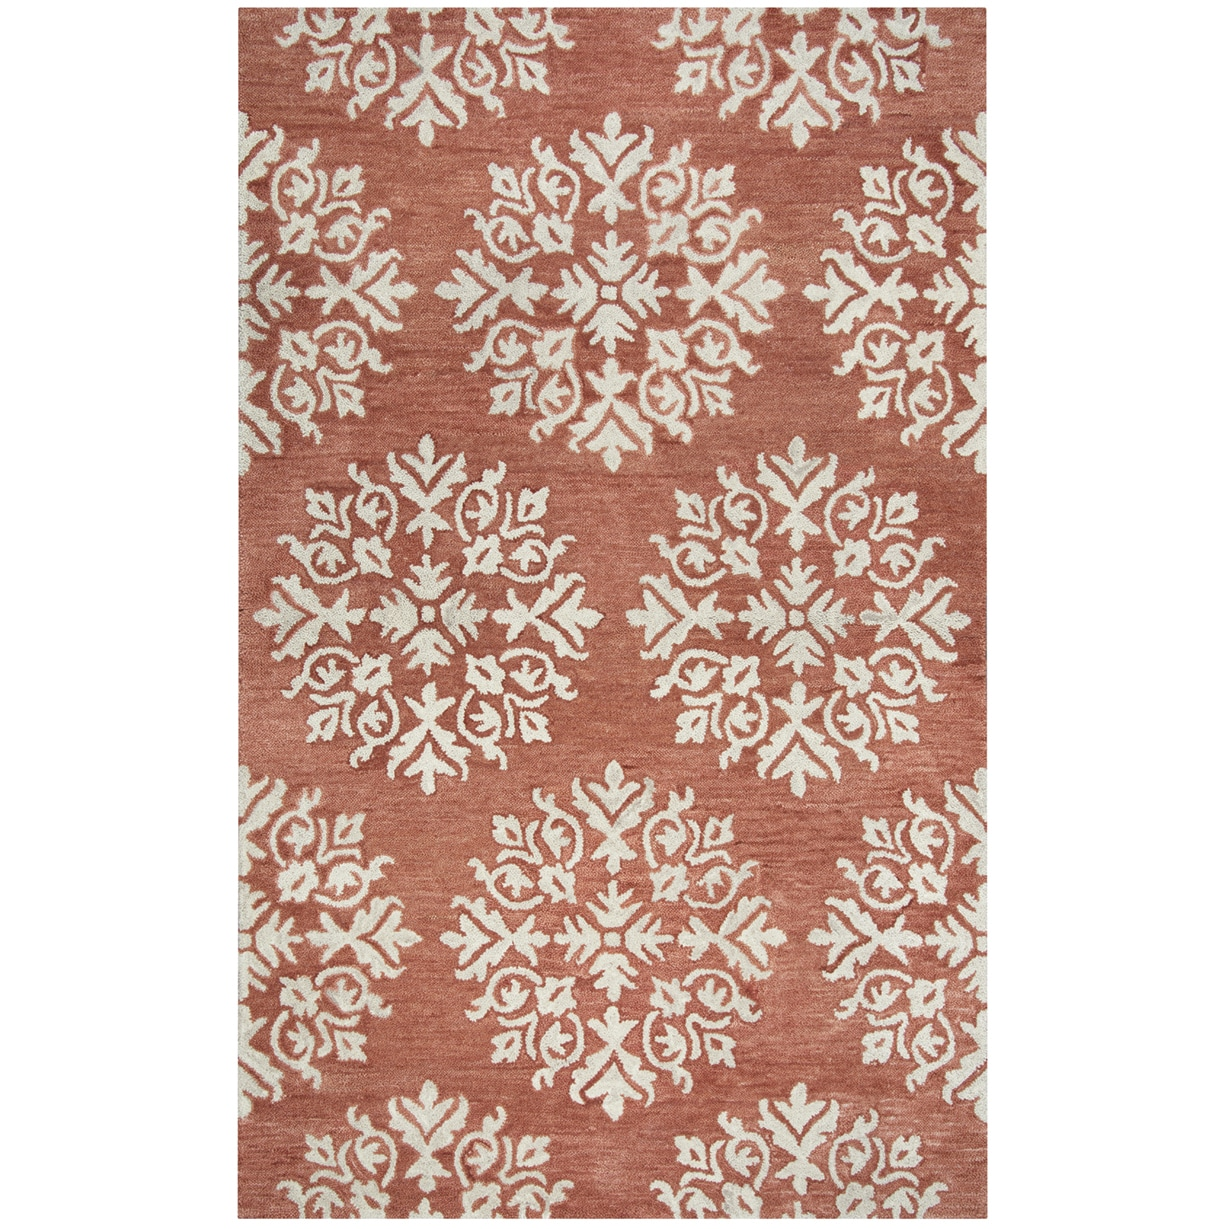 Shop Hand Tufted Napoli Coral Medallion Wool Area Rug 8 X 10